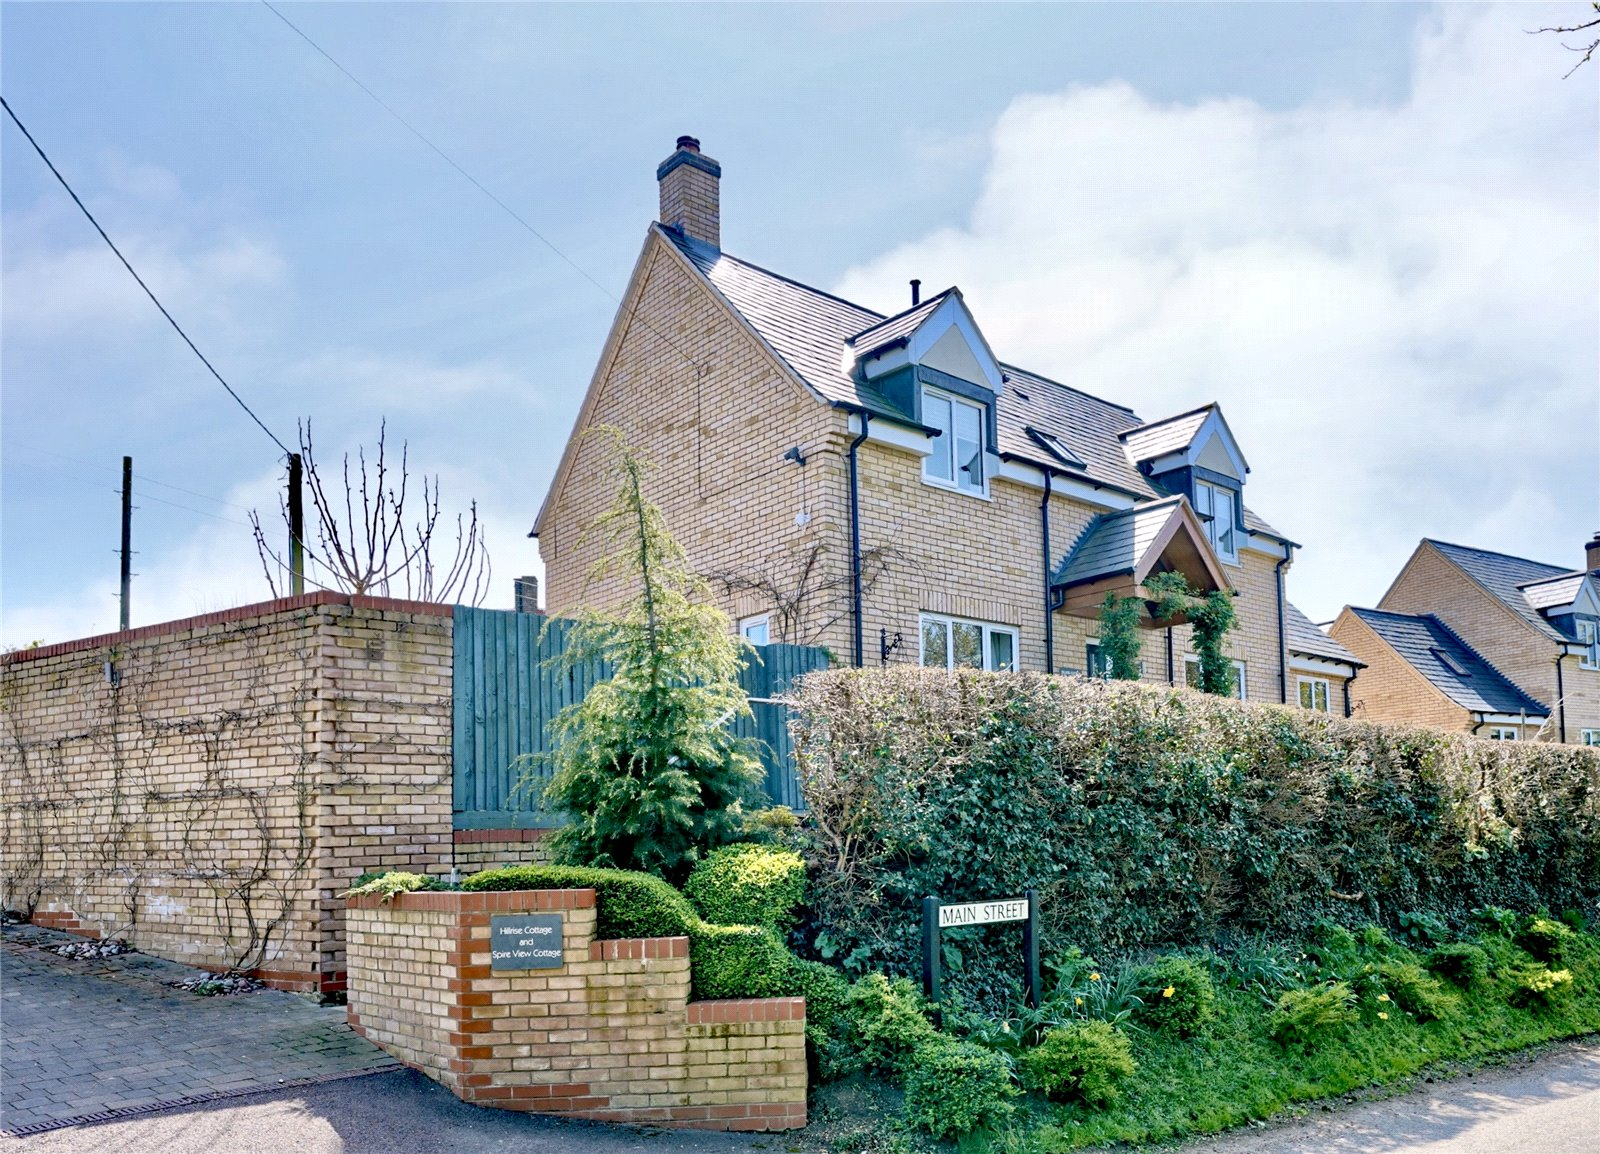 4 bed house for sale in Upton, PE28 5YB  - Property Image 1